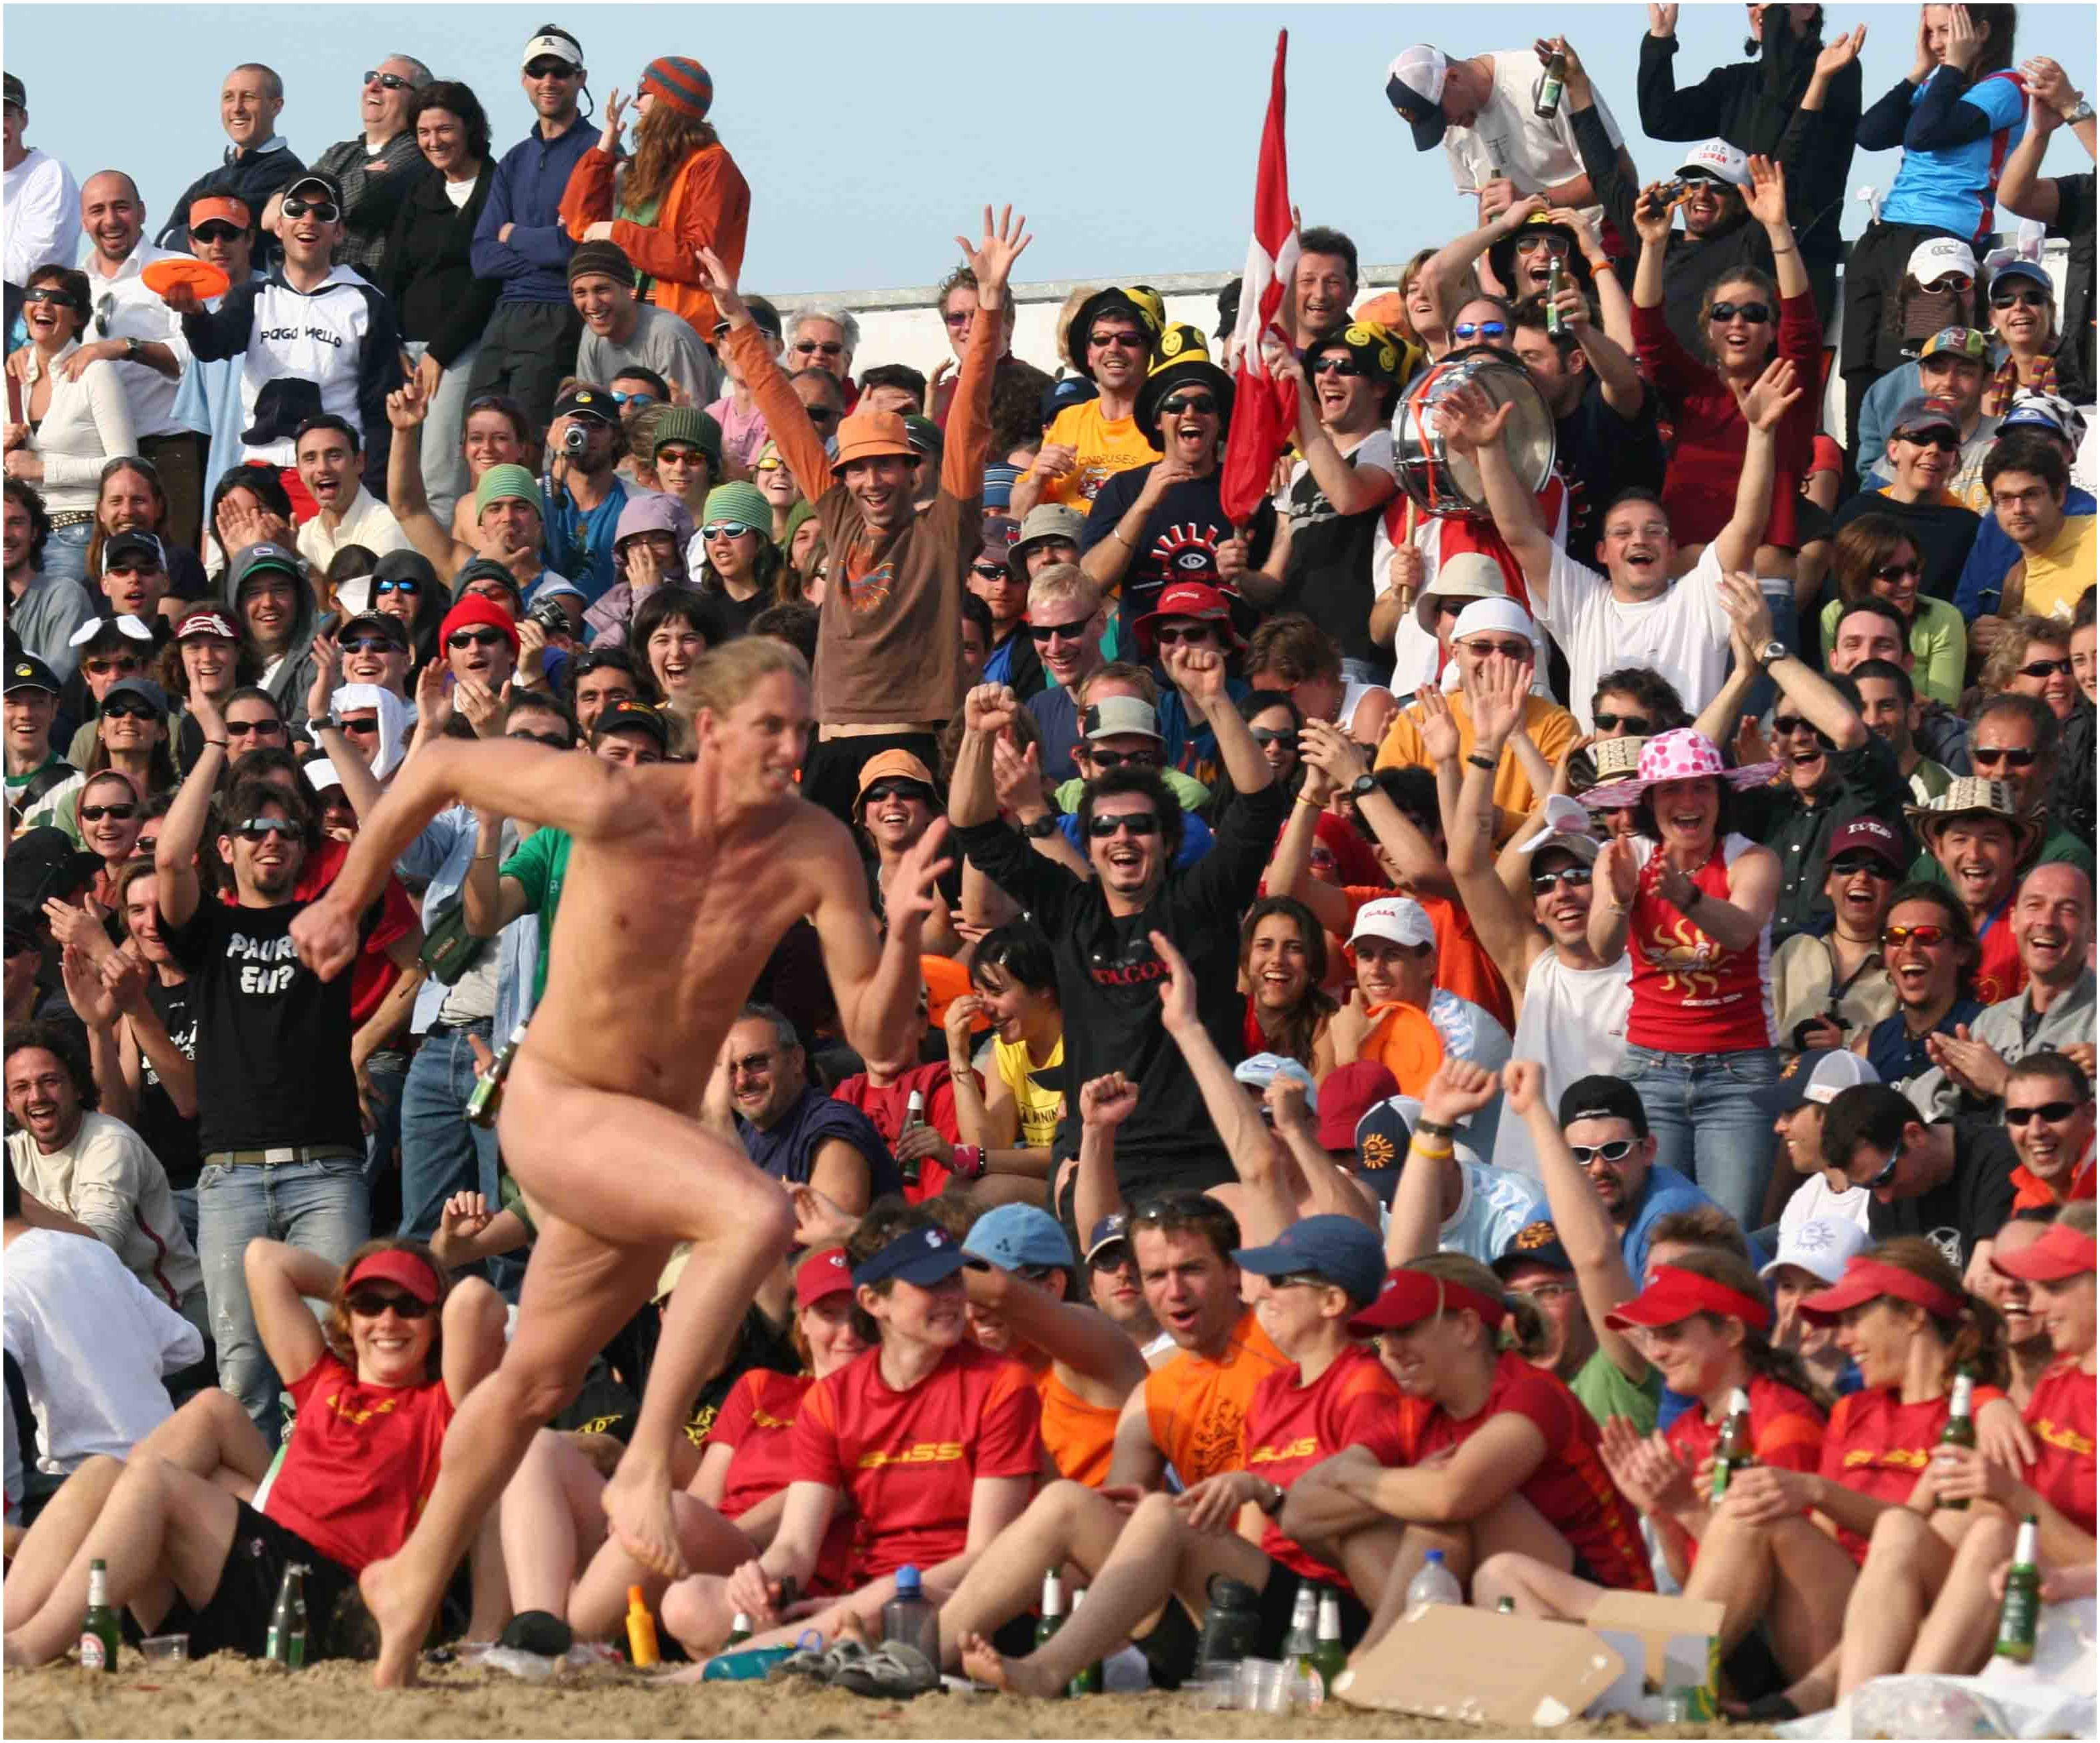 man working beach sand people sun sport crowd summer au nce cheering italy events sports romagna